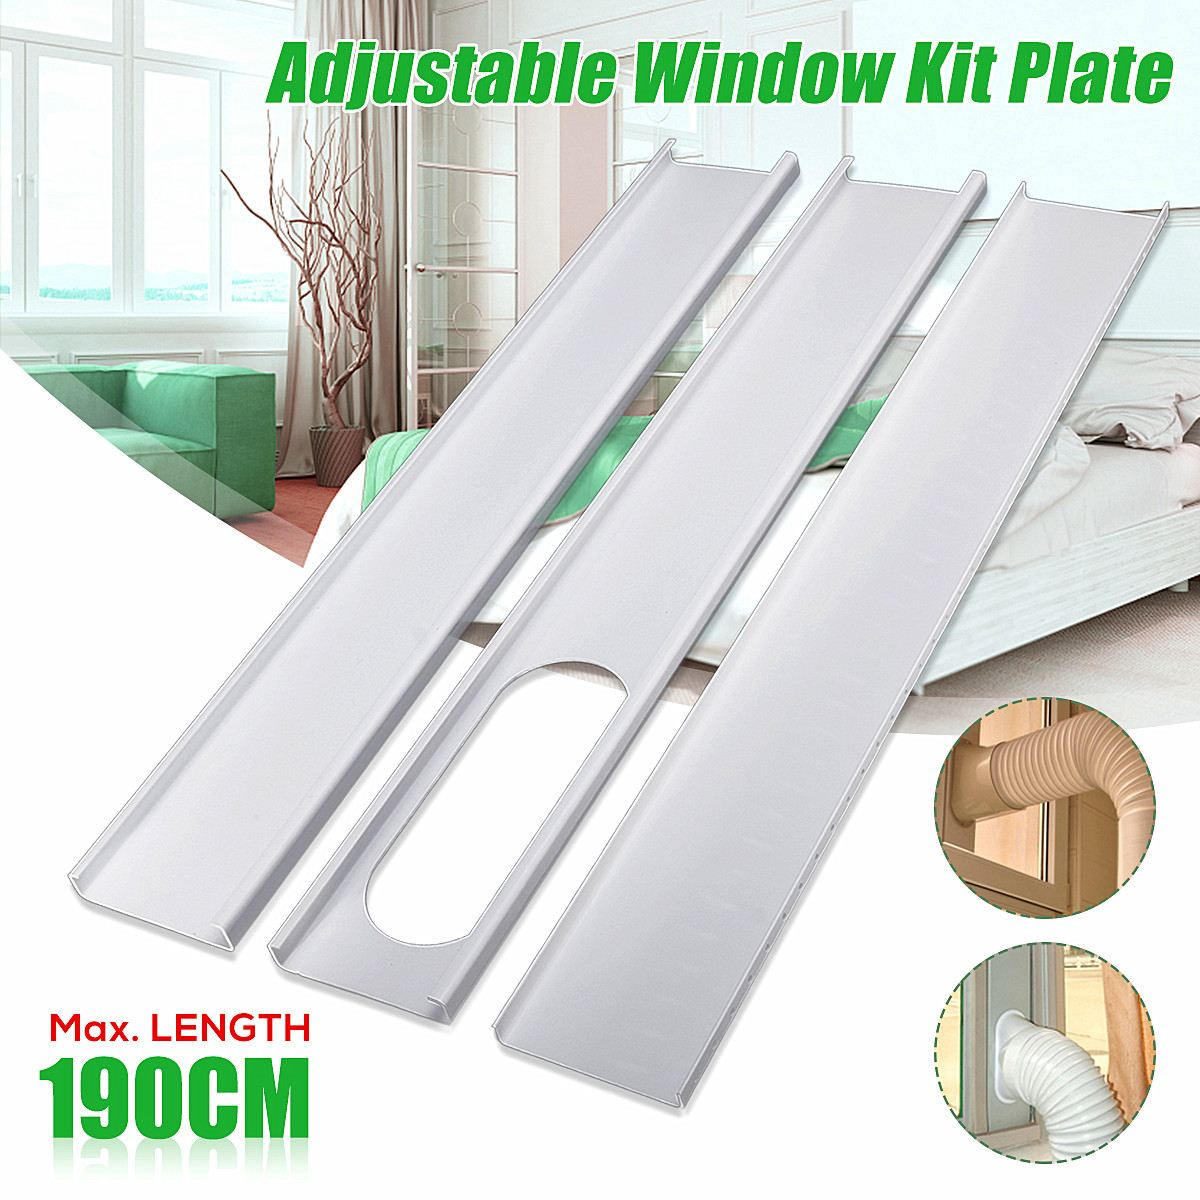 3Pcs Adjustable 190cm Air Conditioner Window Slide PVC Plate Exhaust Hose Tube Connector Kit For Portable Air Conditioner